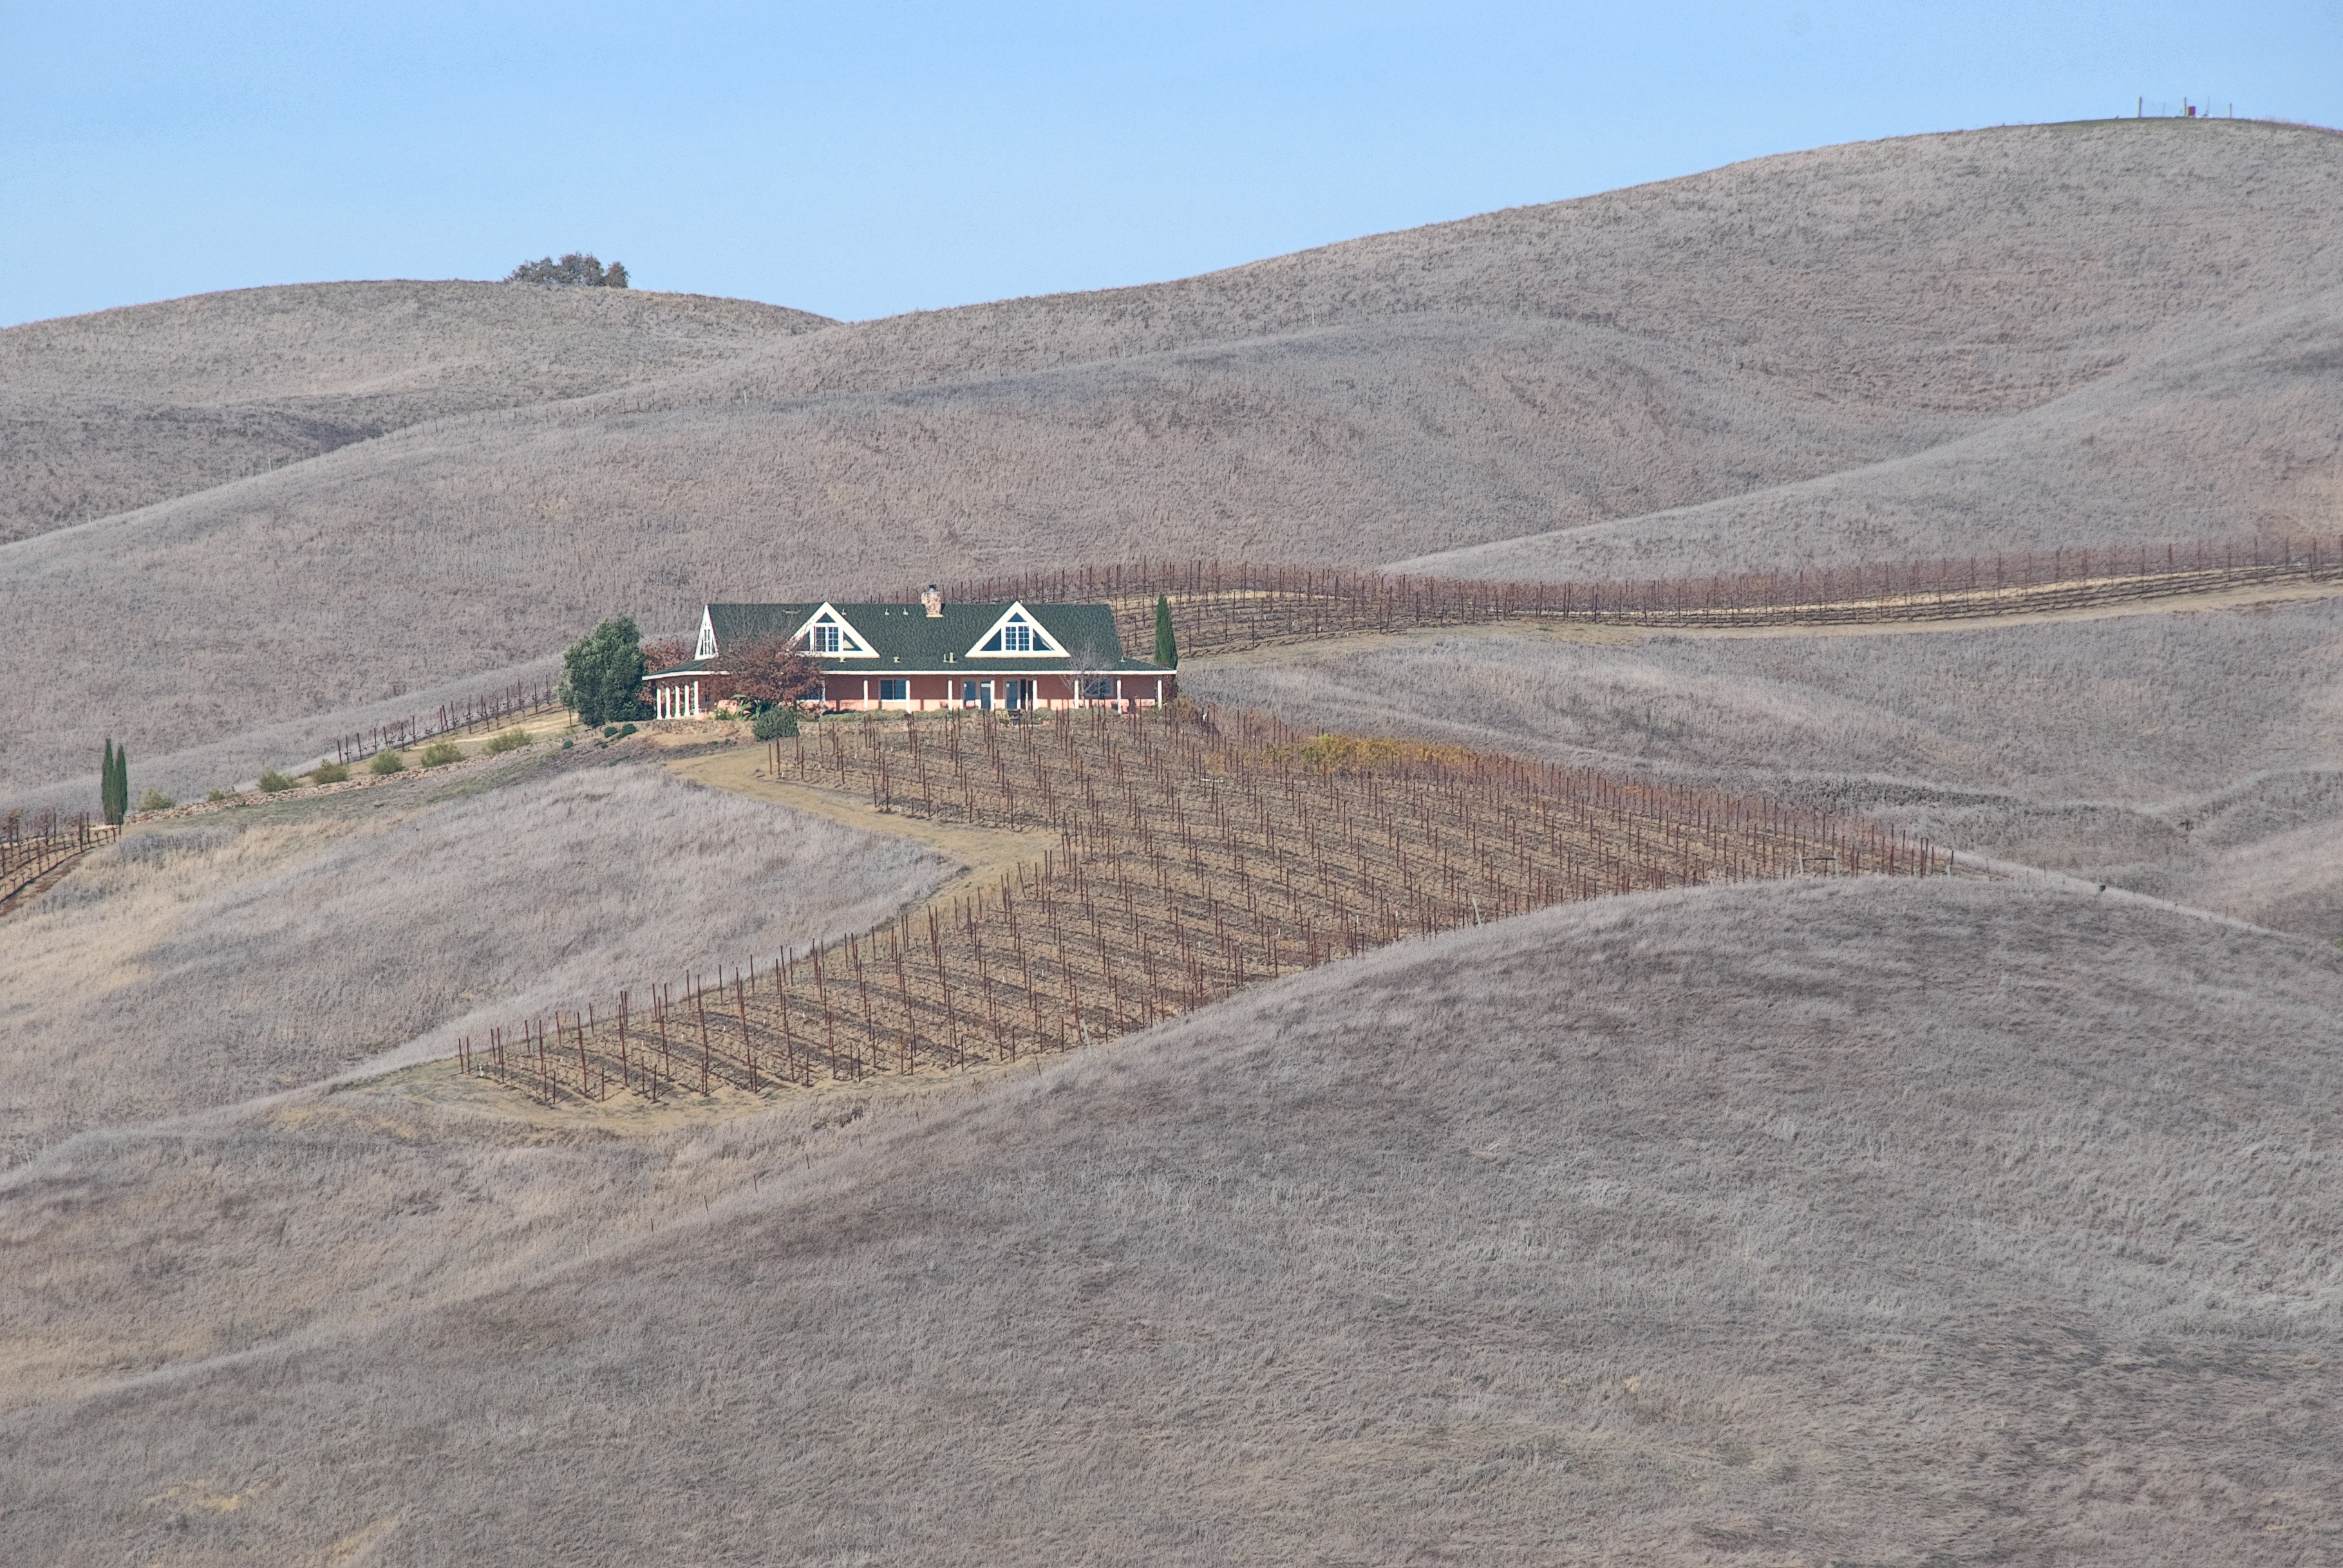 Brown hillside parched by extended drought conditions in California